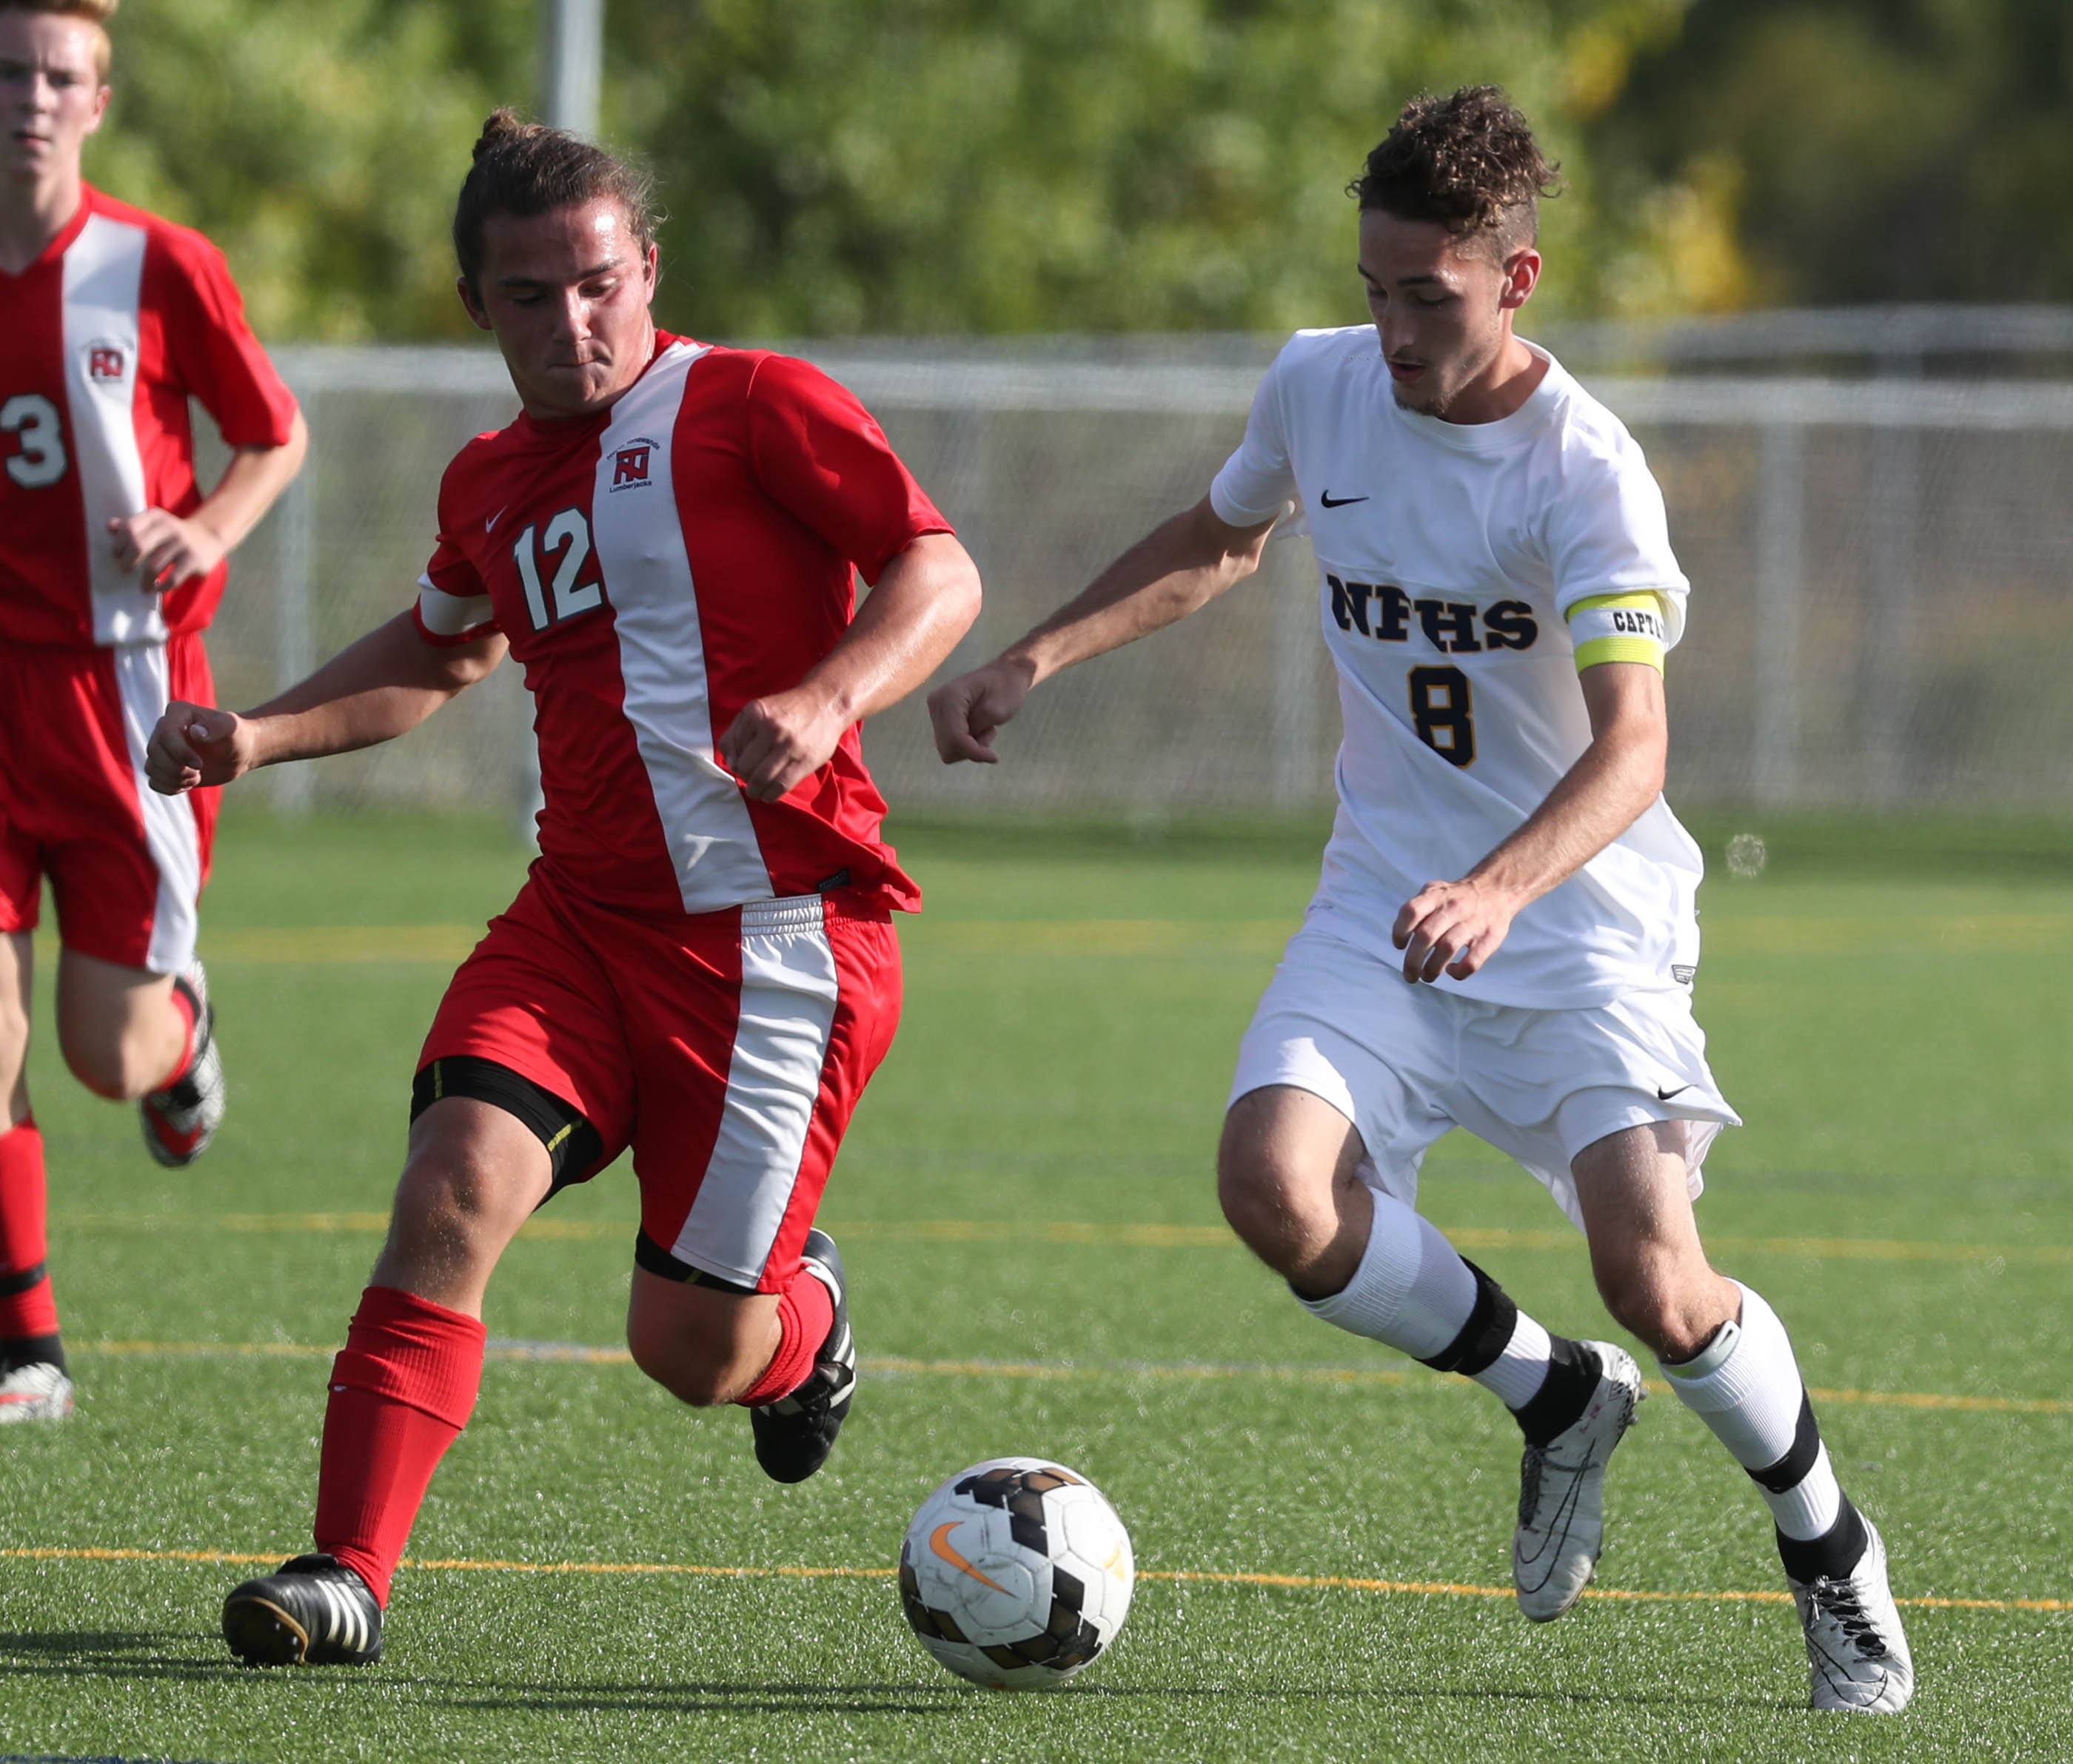 North Tonawanda's Dylan Folger, left, and Niagara Falls' Nick McKean battle for the ball during Falls' 3-2 victory on Wednesday.